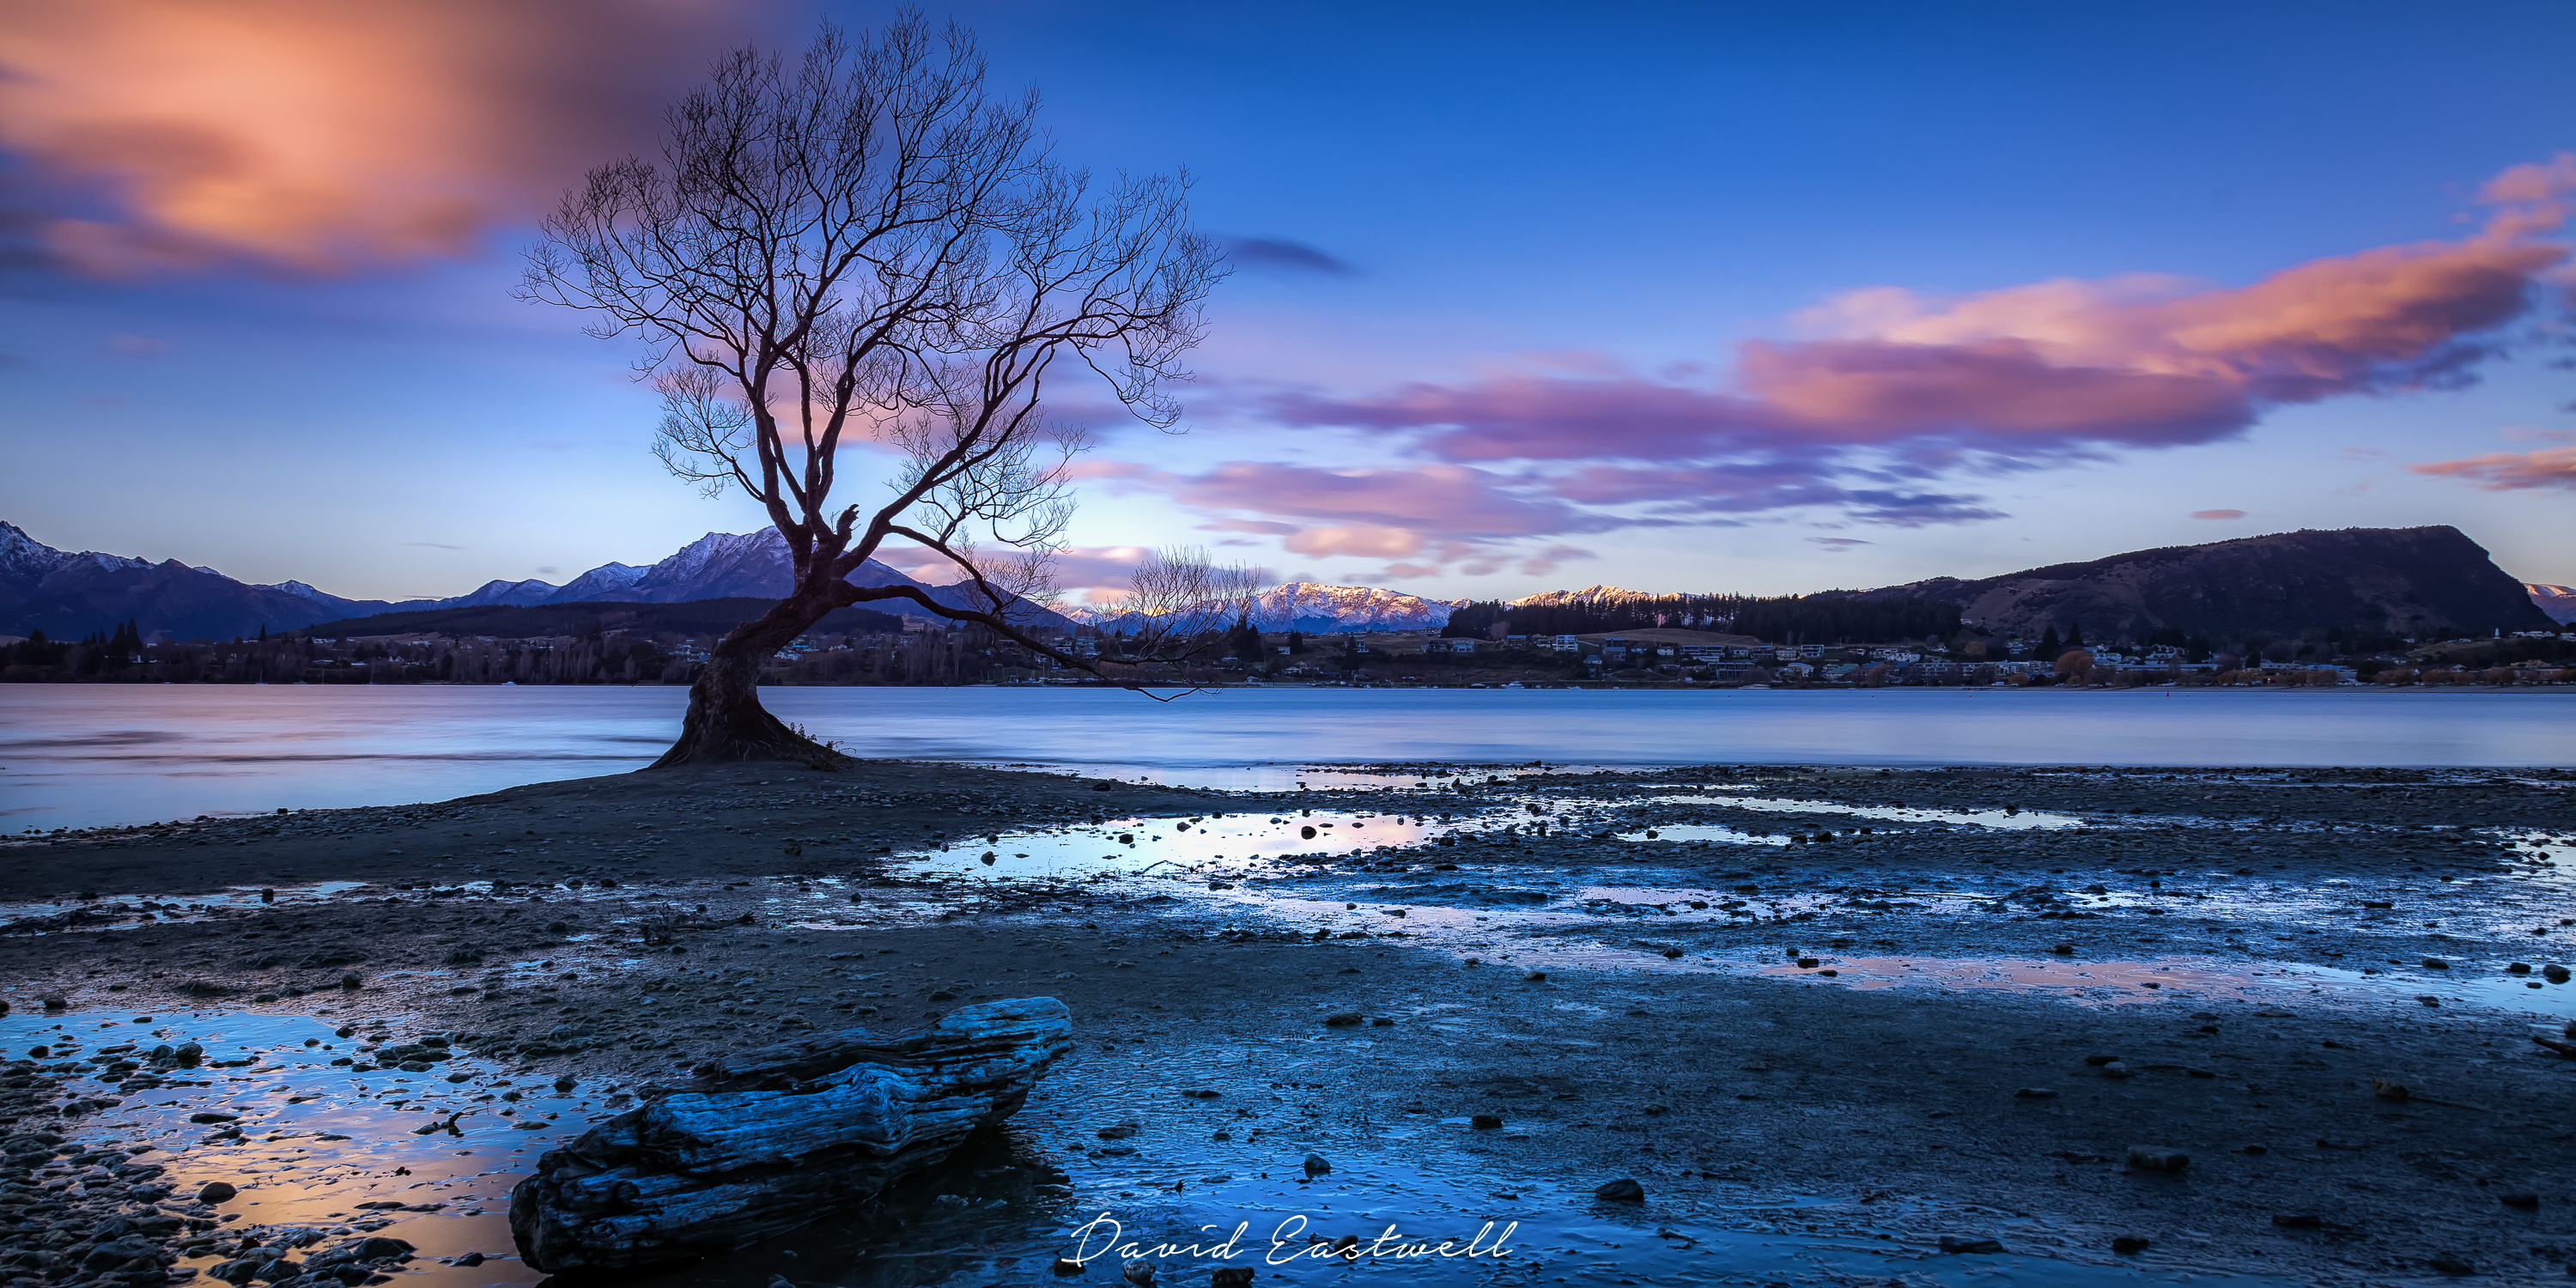 The Wanaka Tree-